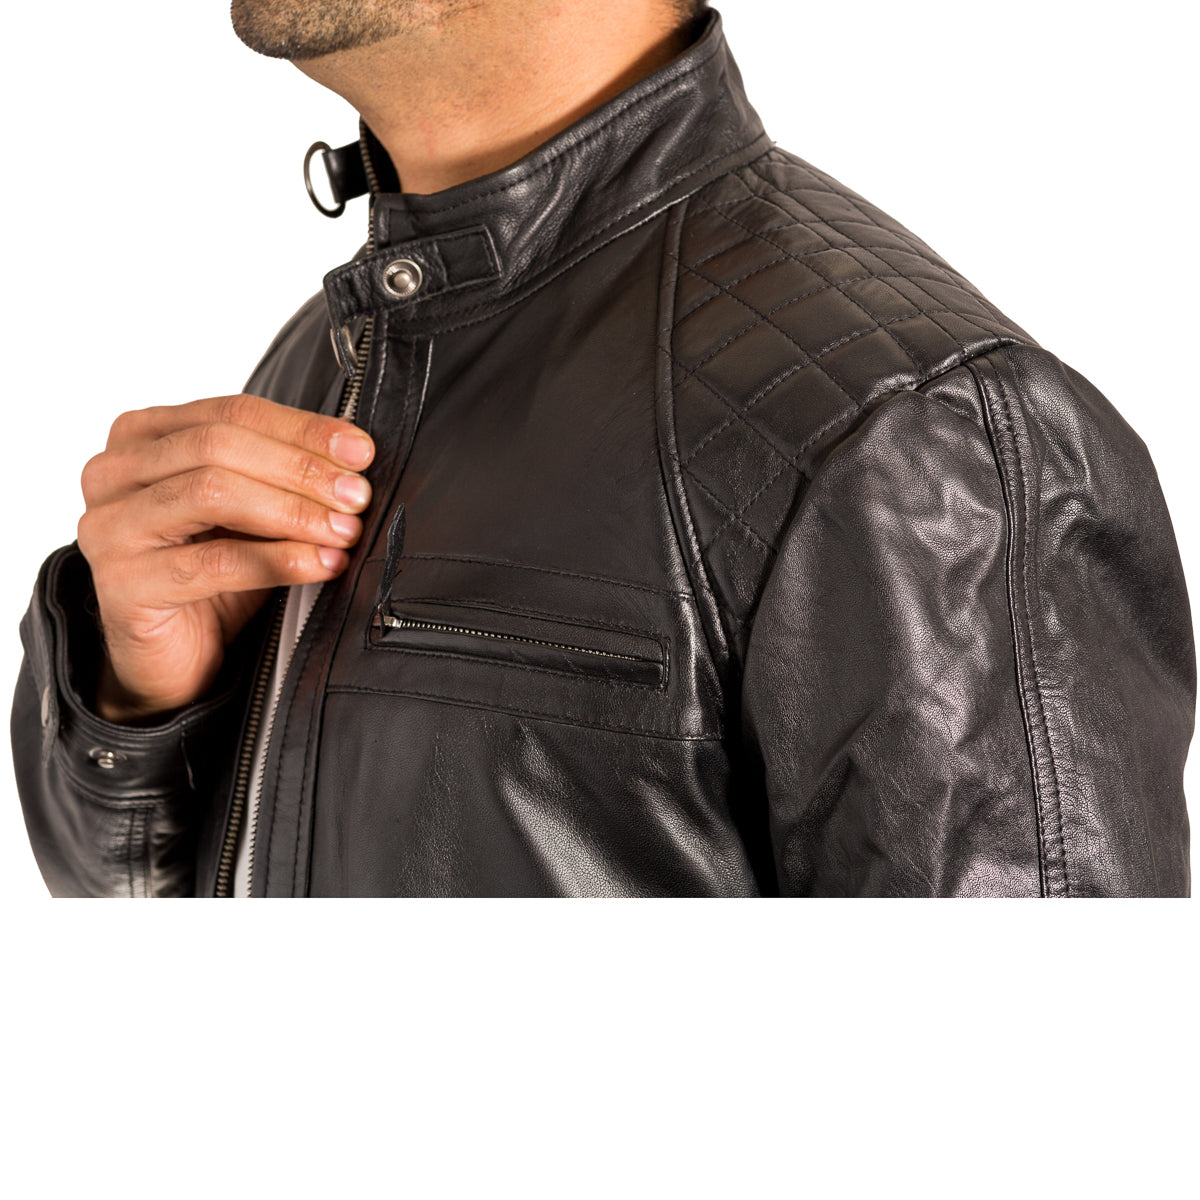 98d25bf6b953 Mens vintage leather quilted smart fitted retro style biker jacket ...